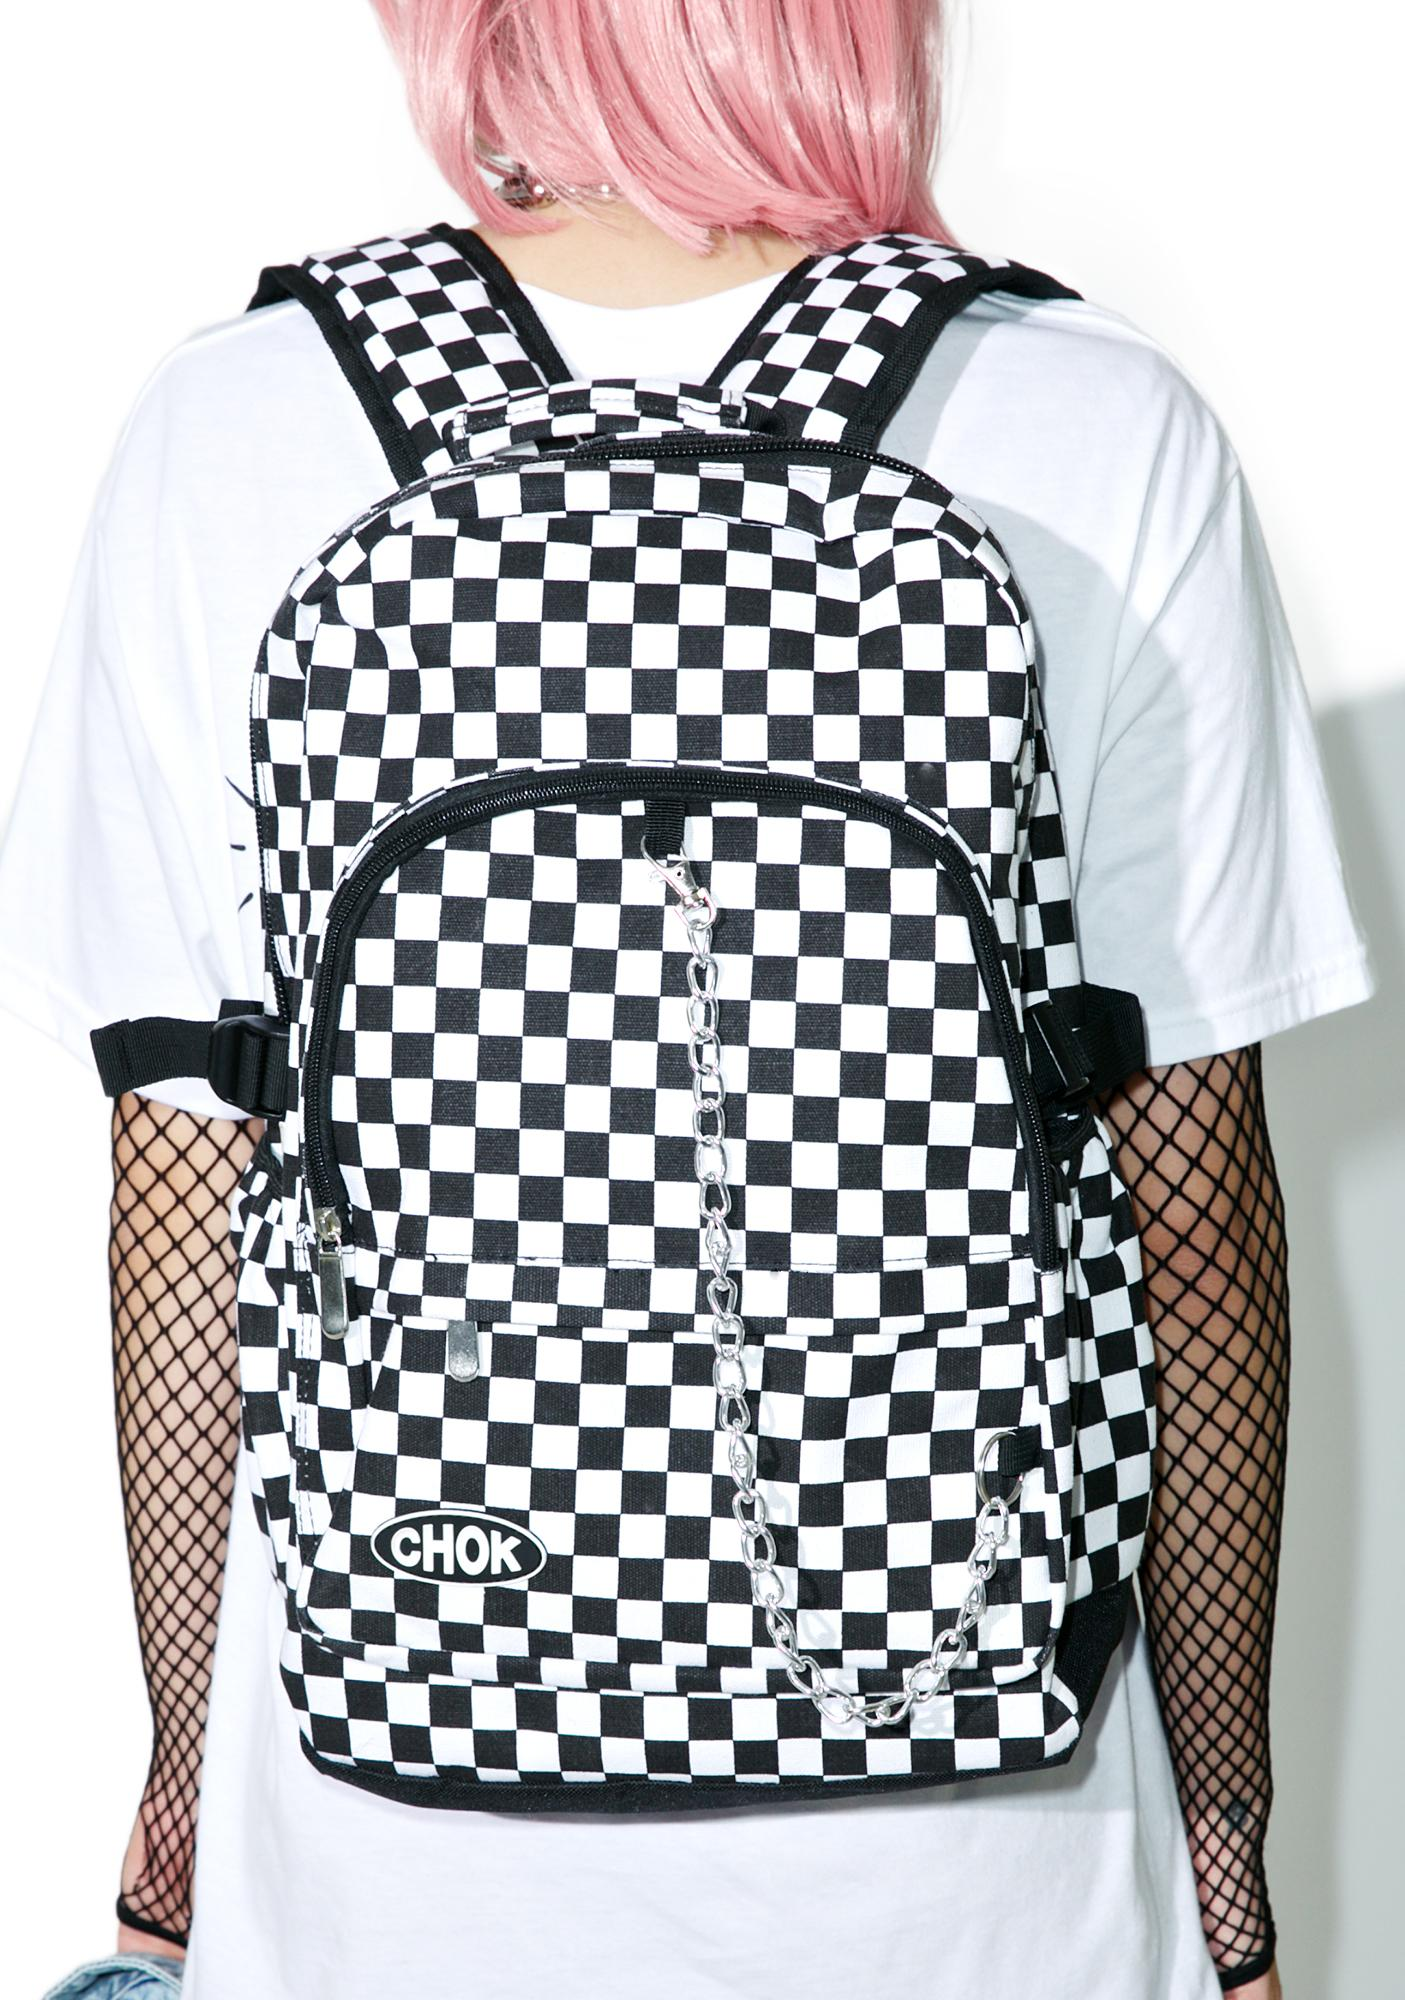 Grid System Checkered Backpack